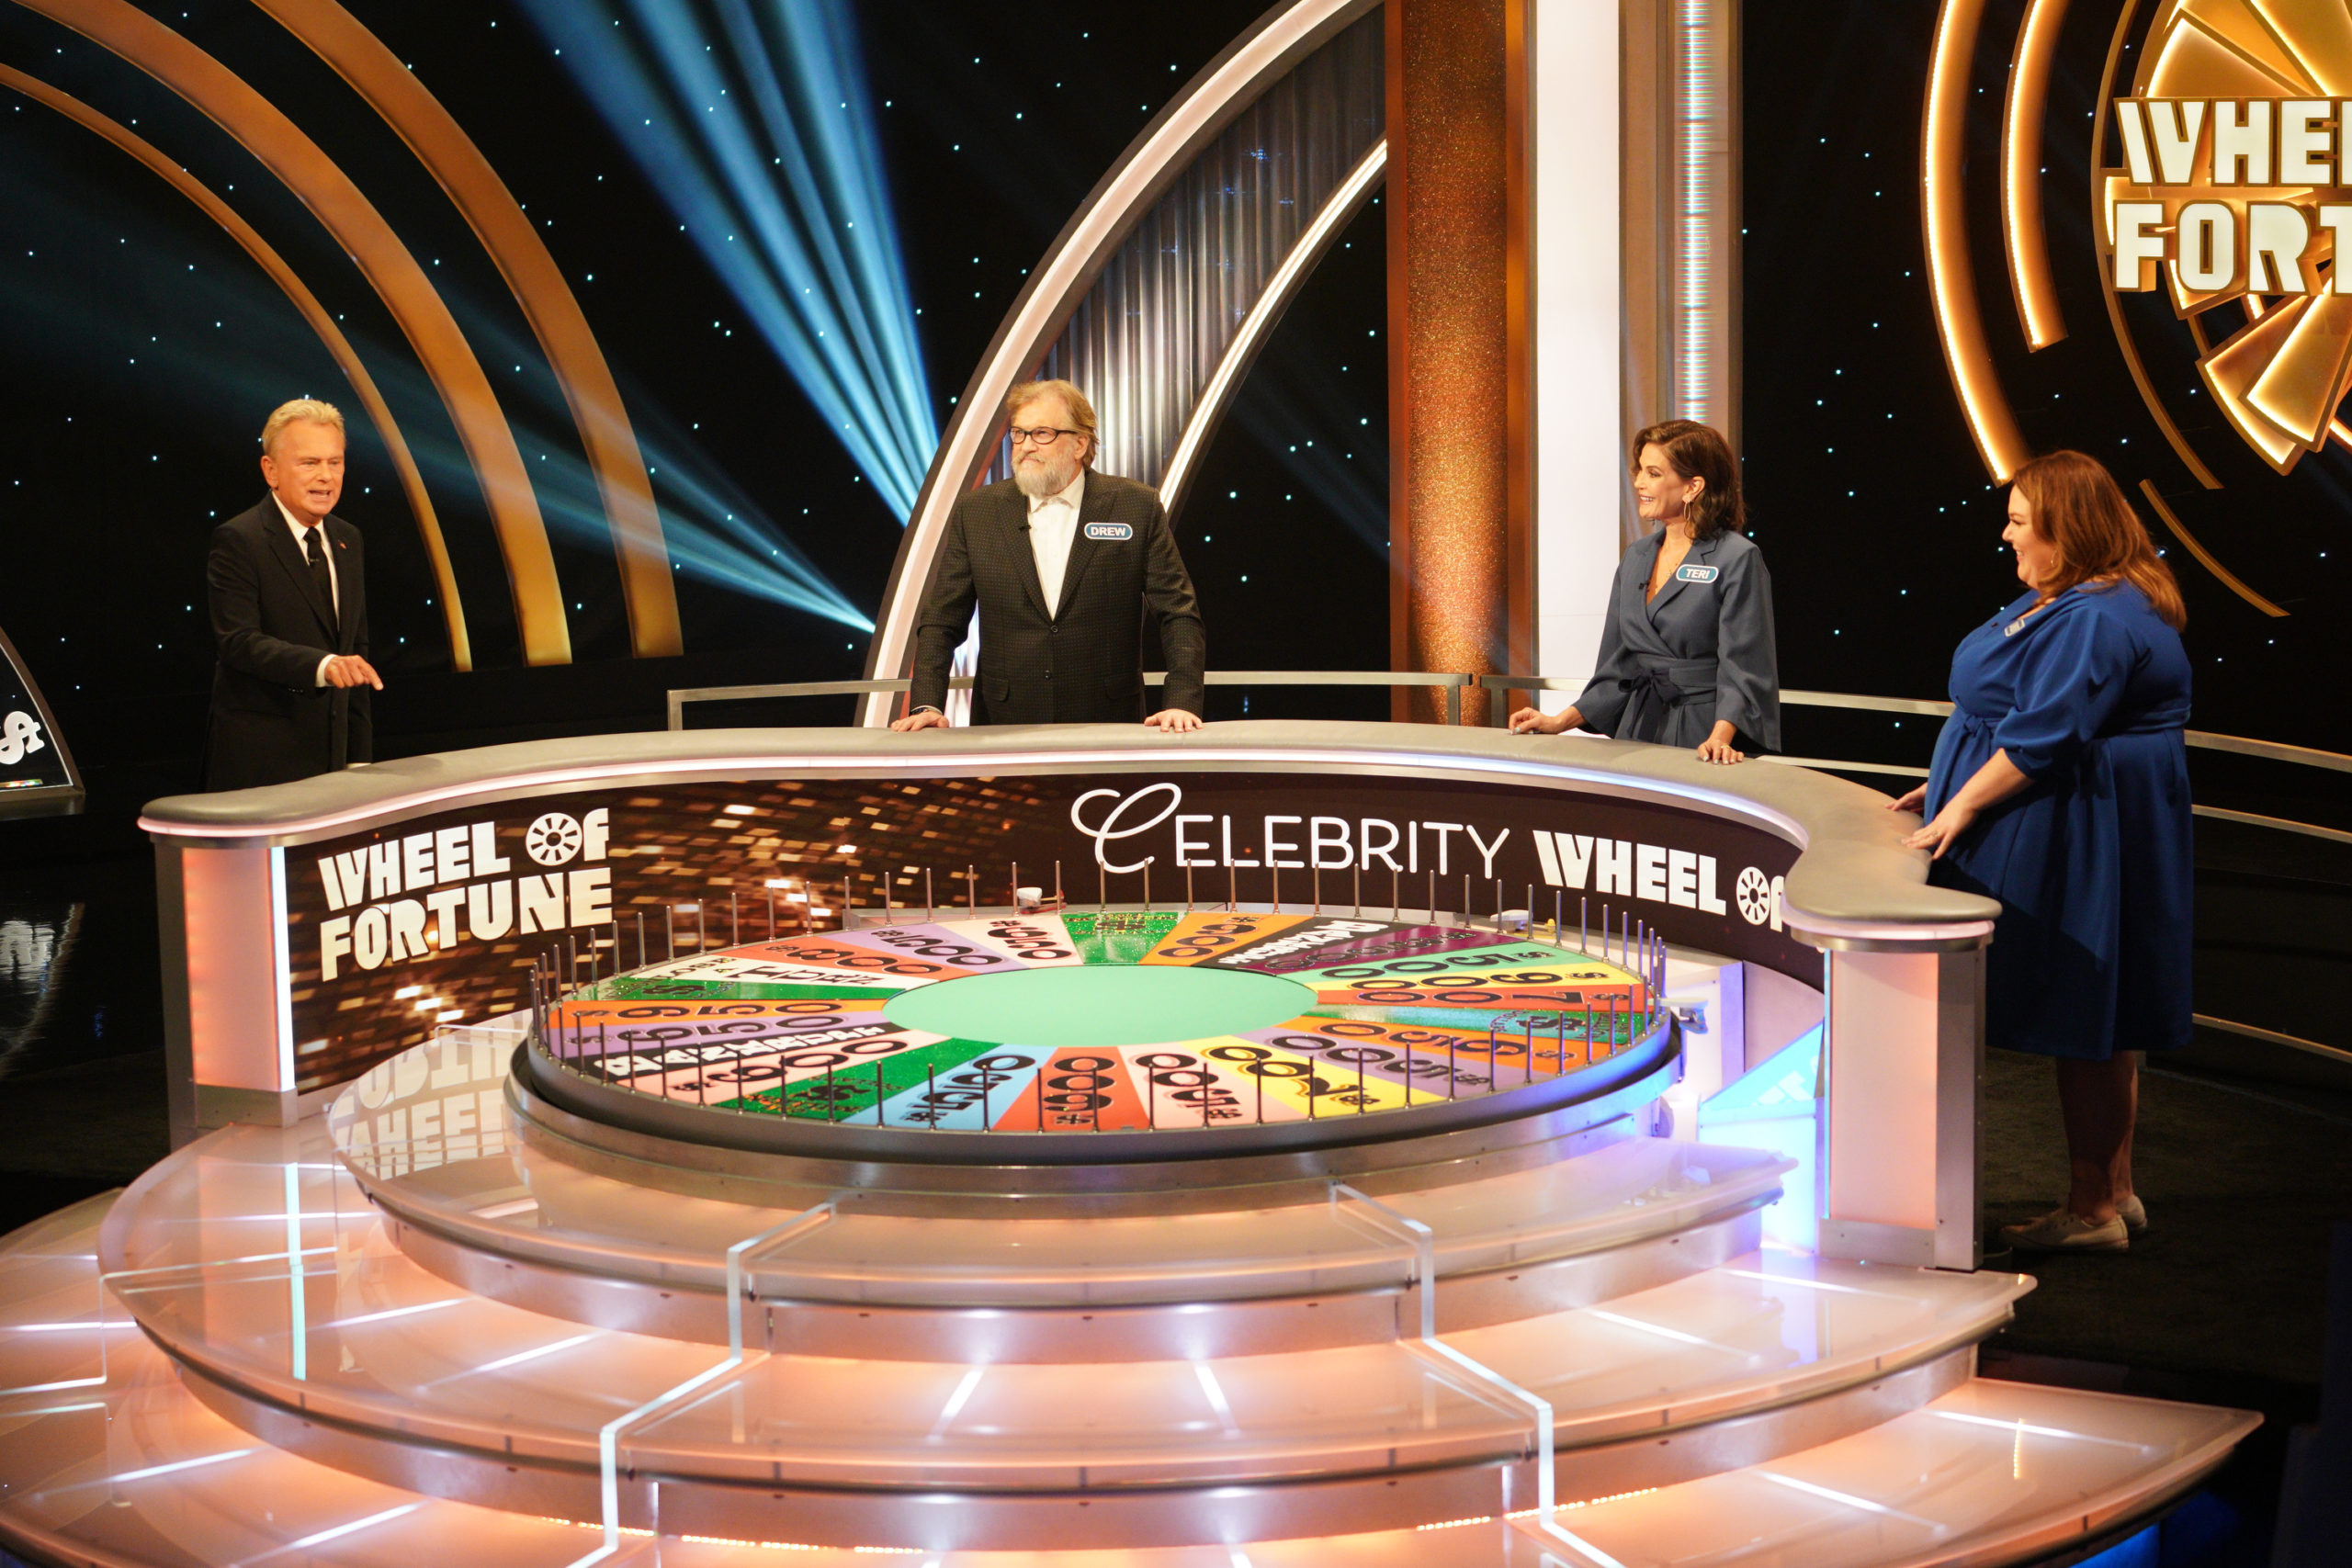 Celebrity Wheel Of Fortune Tv Show On Abc Season One Viewer Votes Canceled Renewed Tv Shows Tv Series Finale